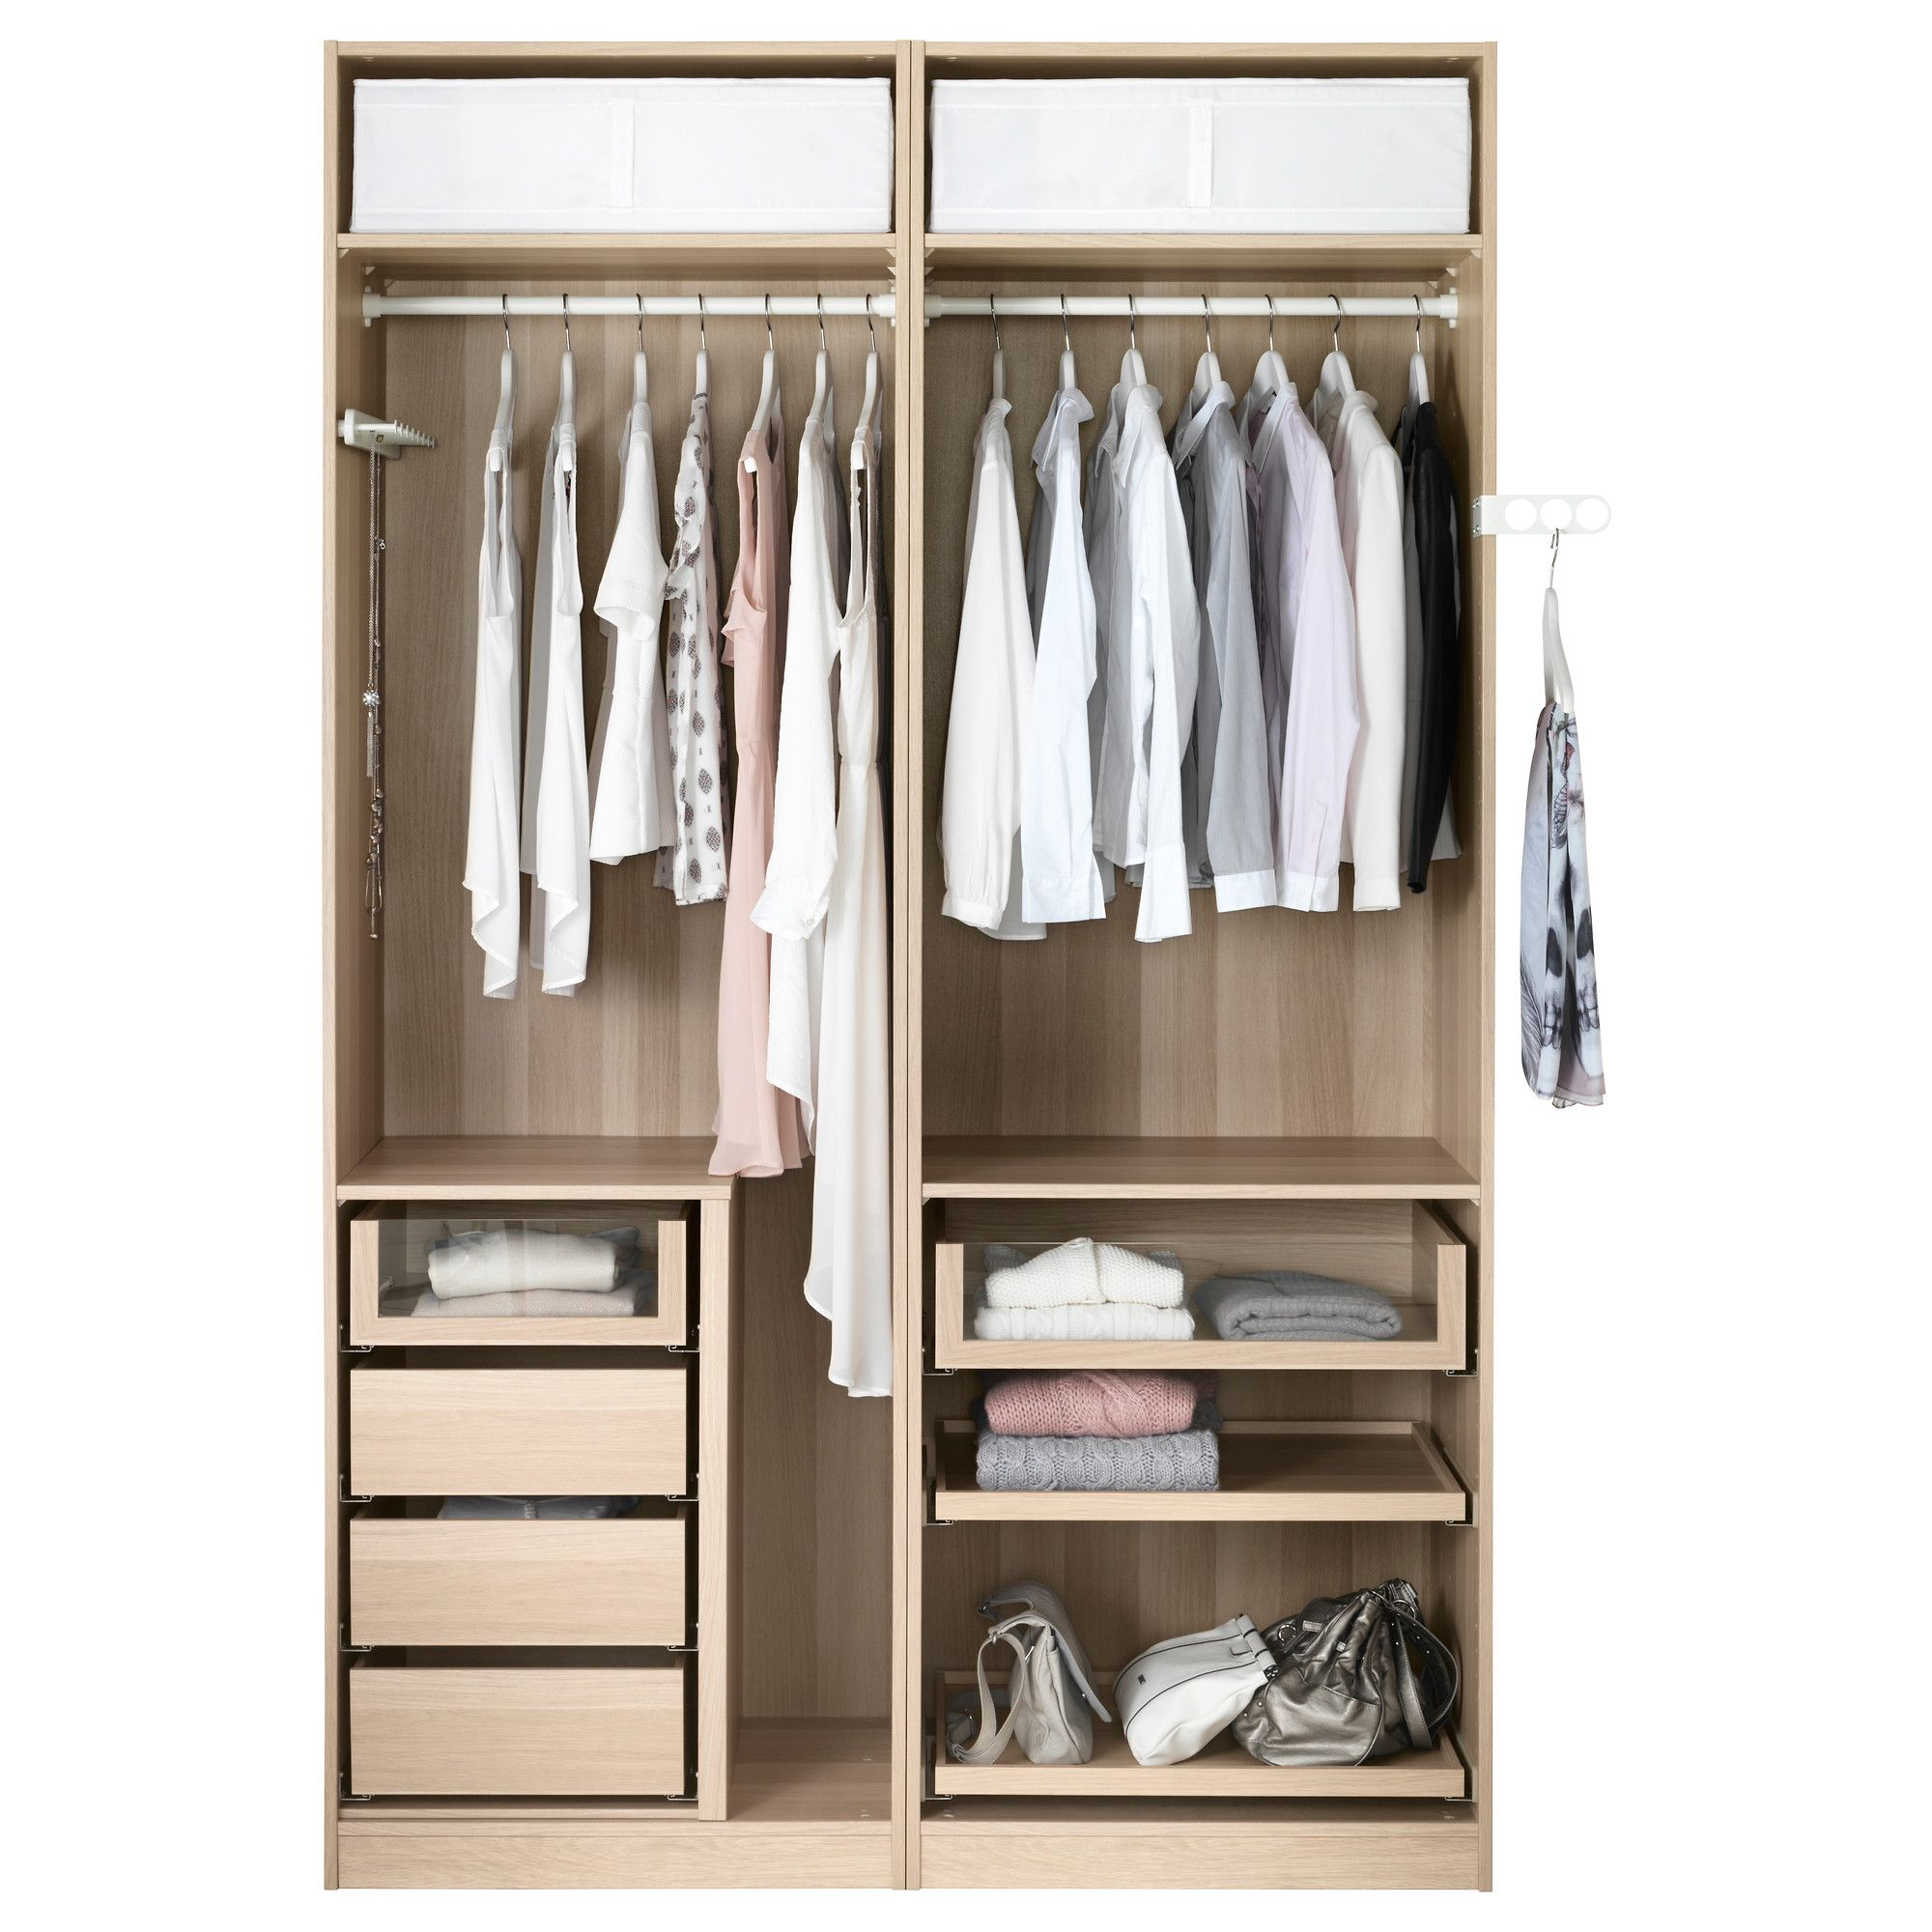 Ikea Pax Wardrobe White Stained Oak Effect Mehamn Closet Layout Closet Designs Ikea Pax Wardrobe